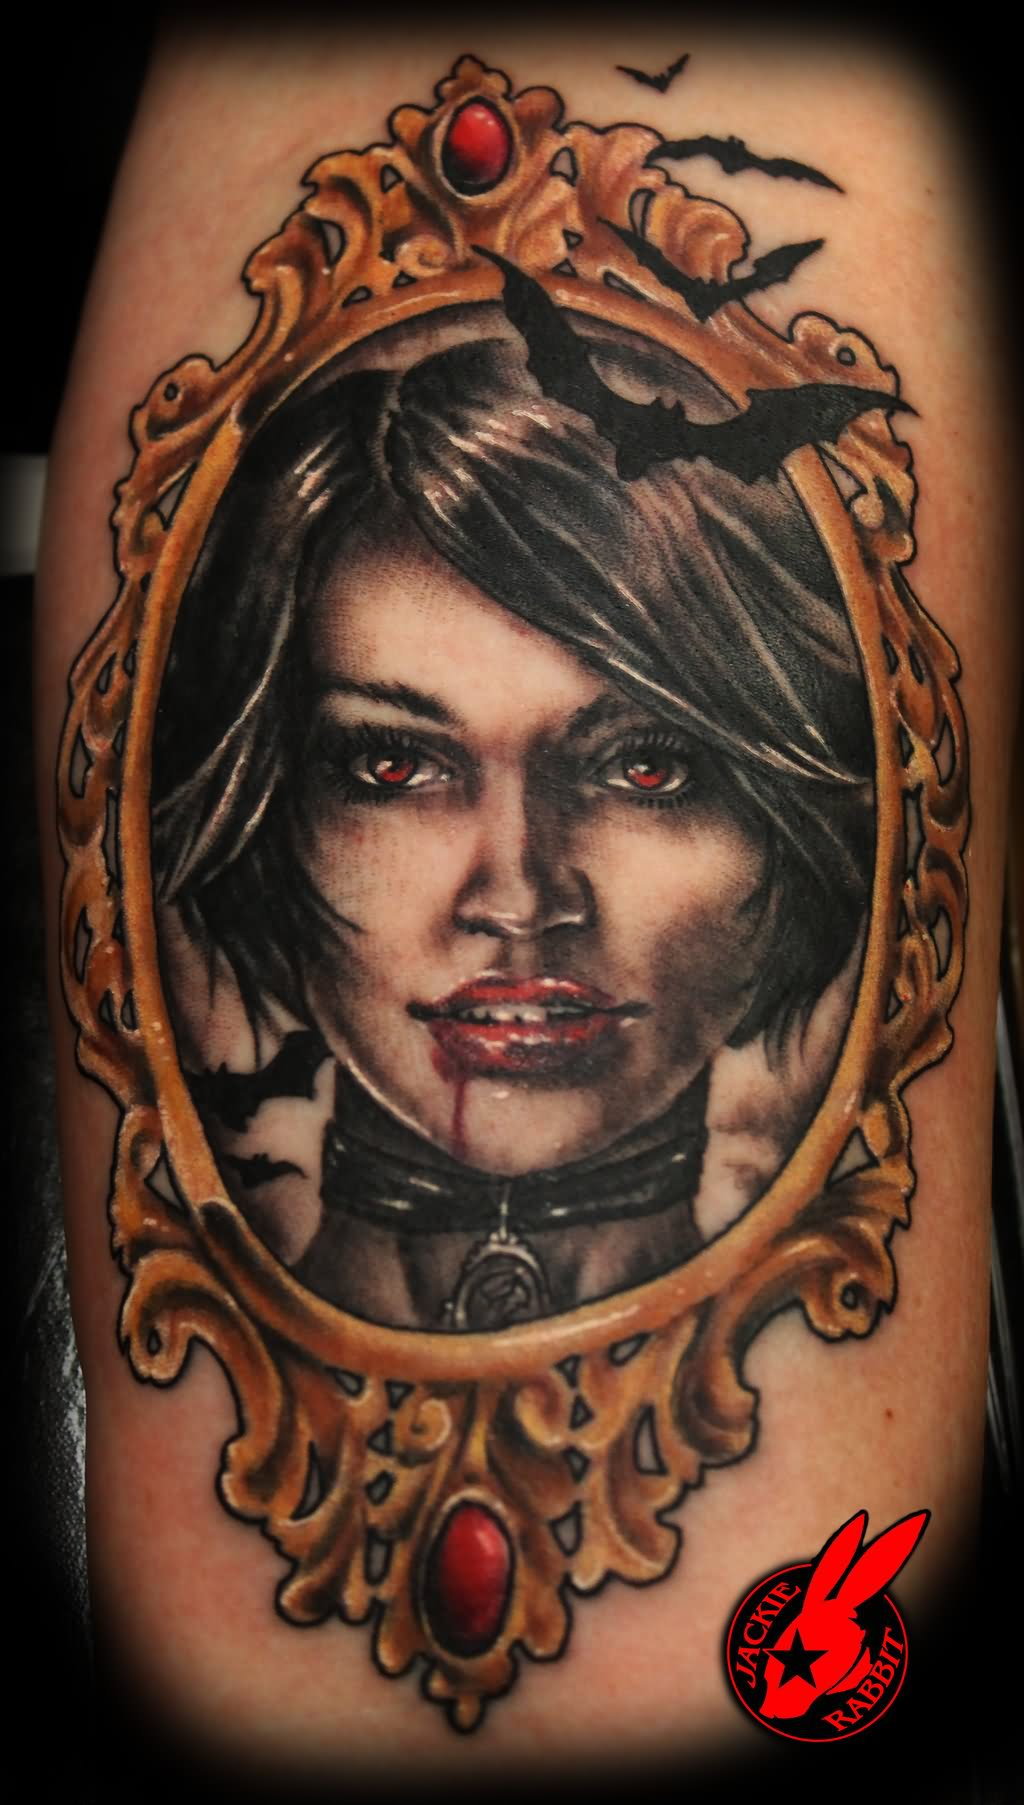 a5f182da6 16+ Vampire Tattoo Images, Pictures, Designs And Ideas